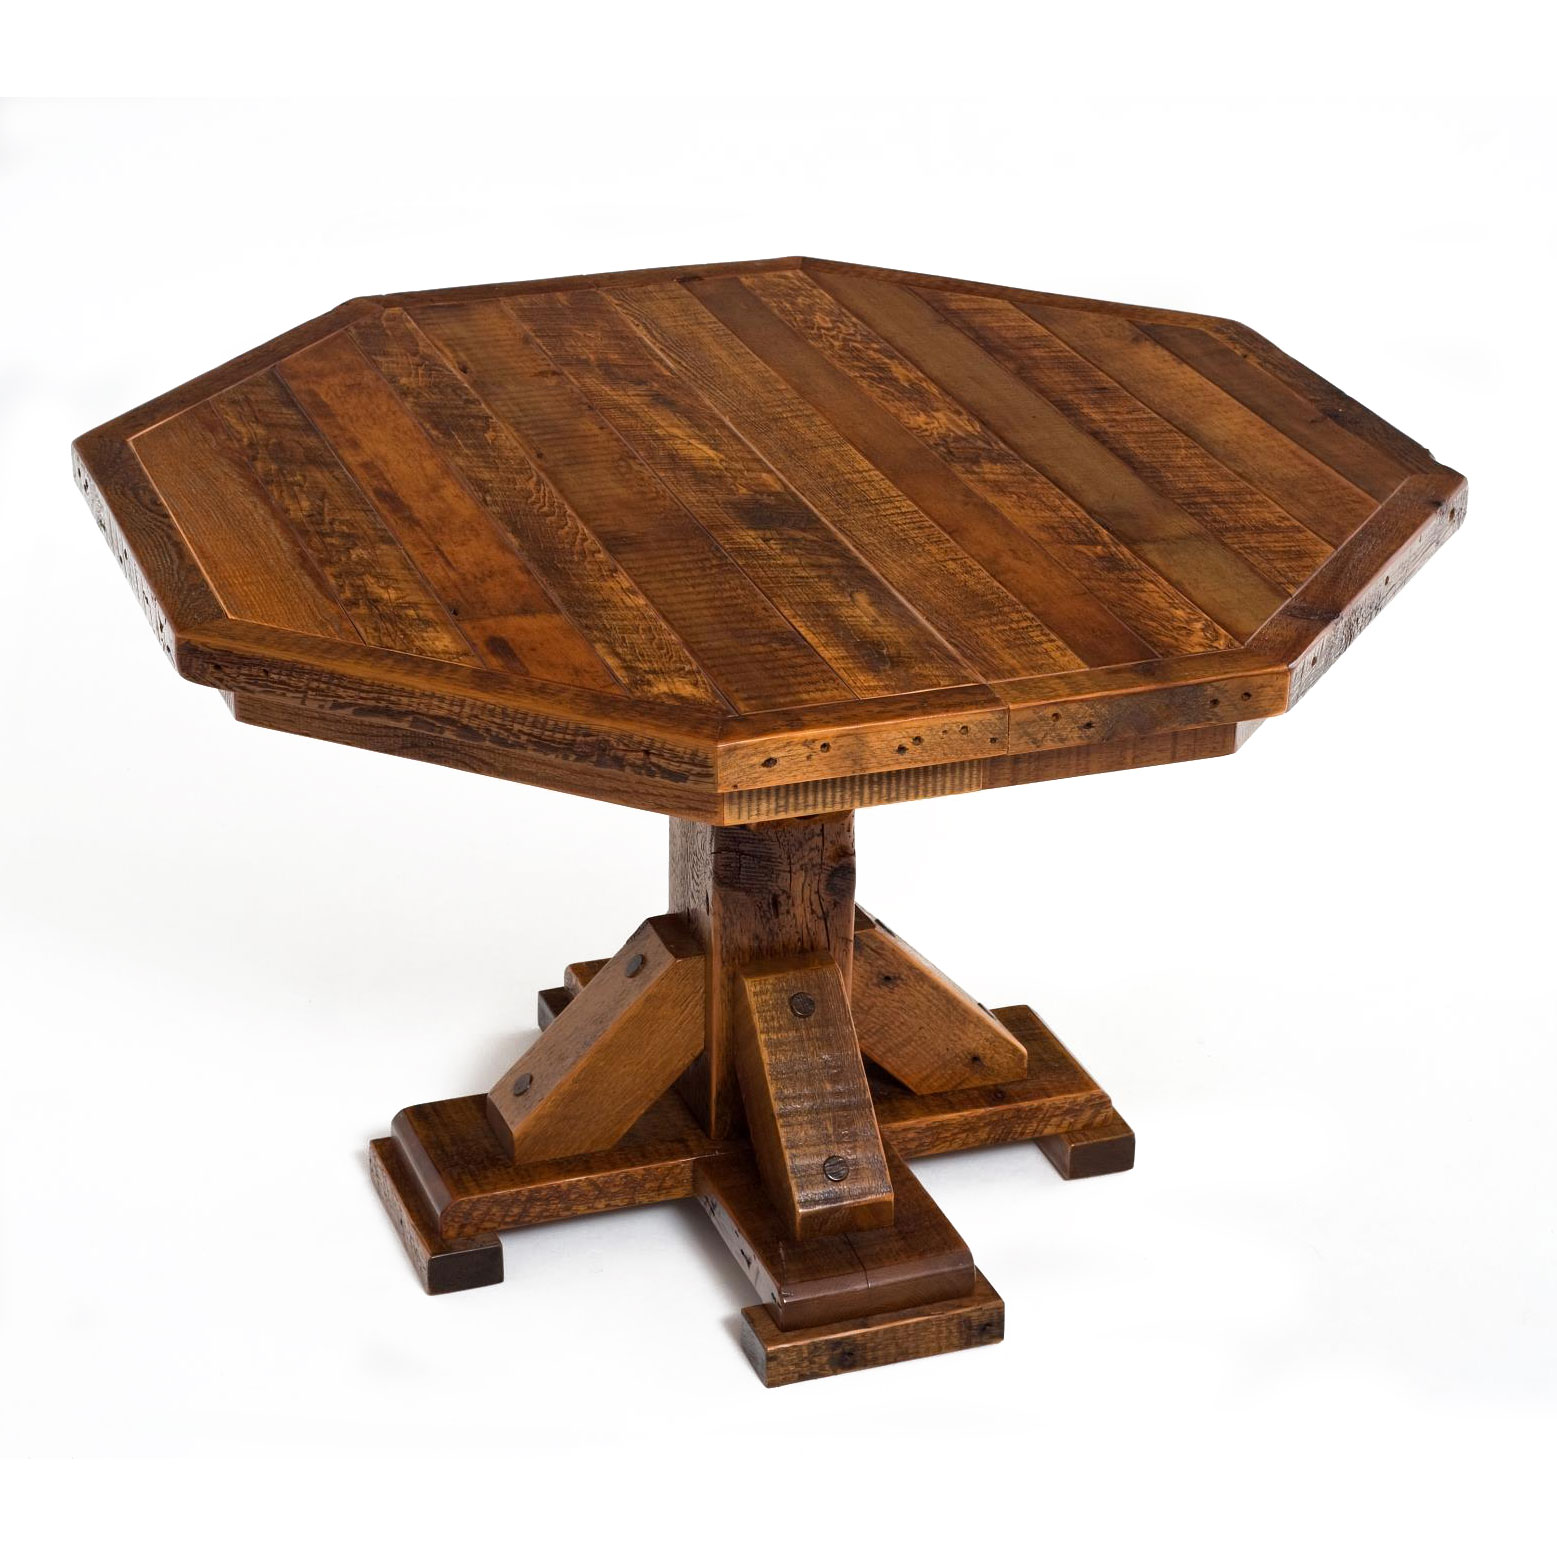 Stony brooke octagon dining table top notch online for Table online